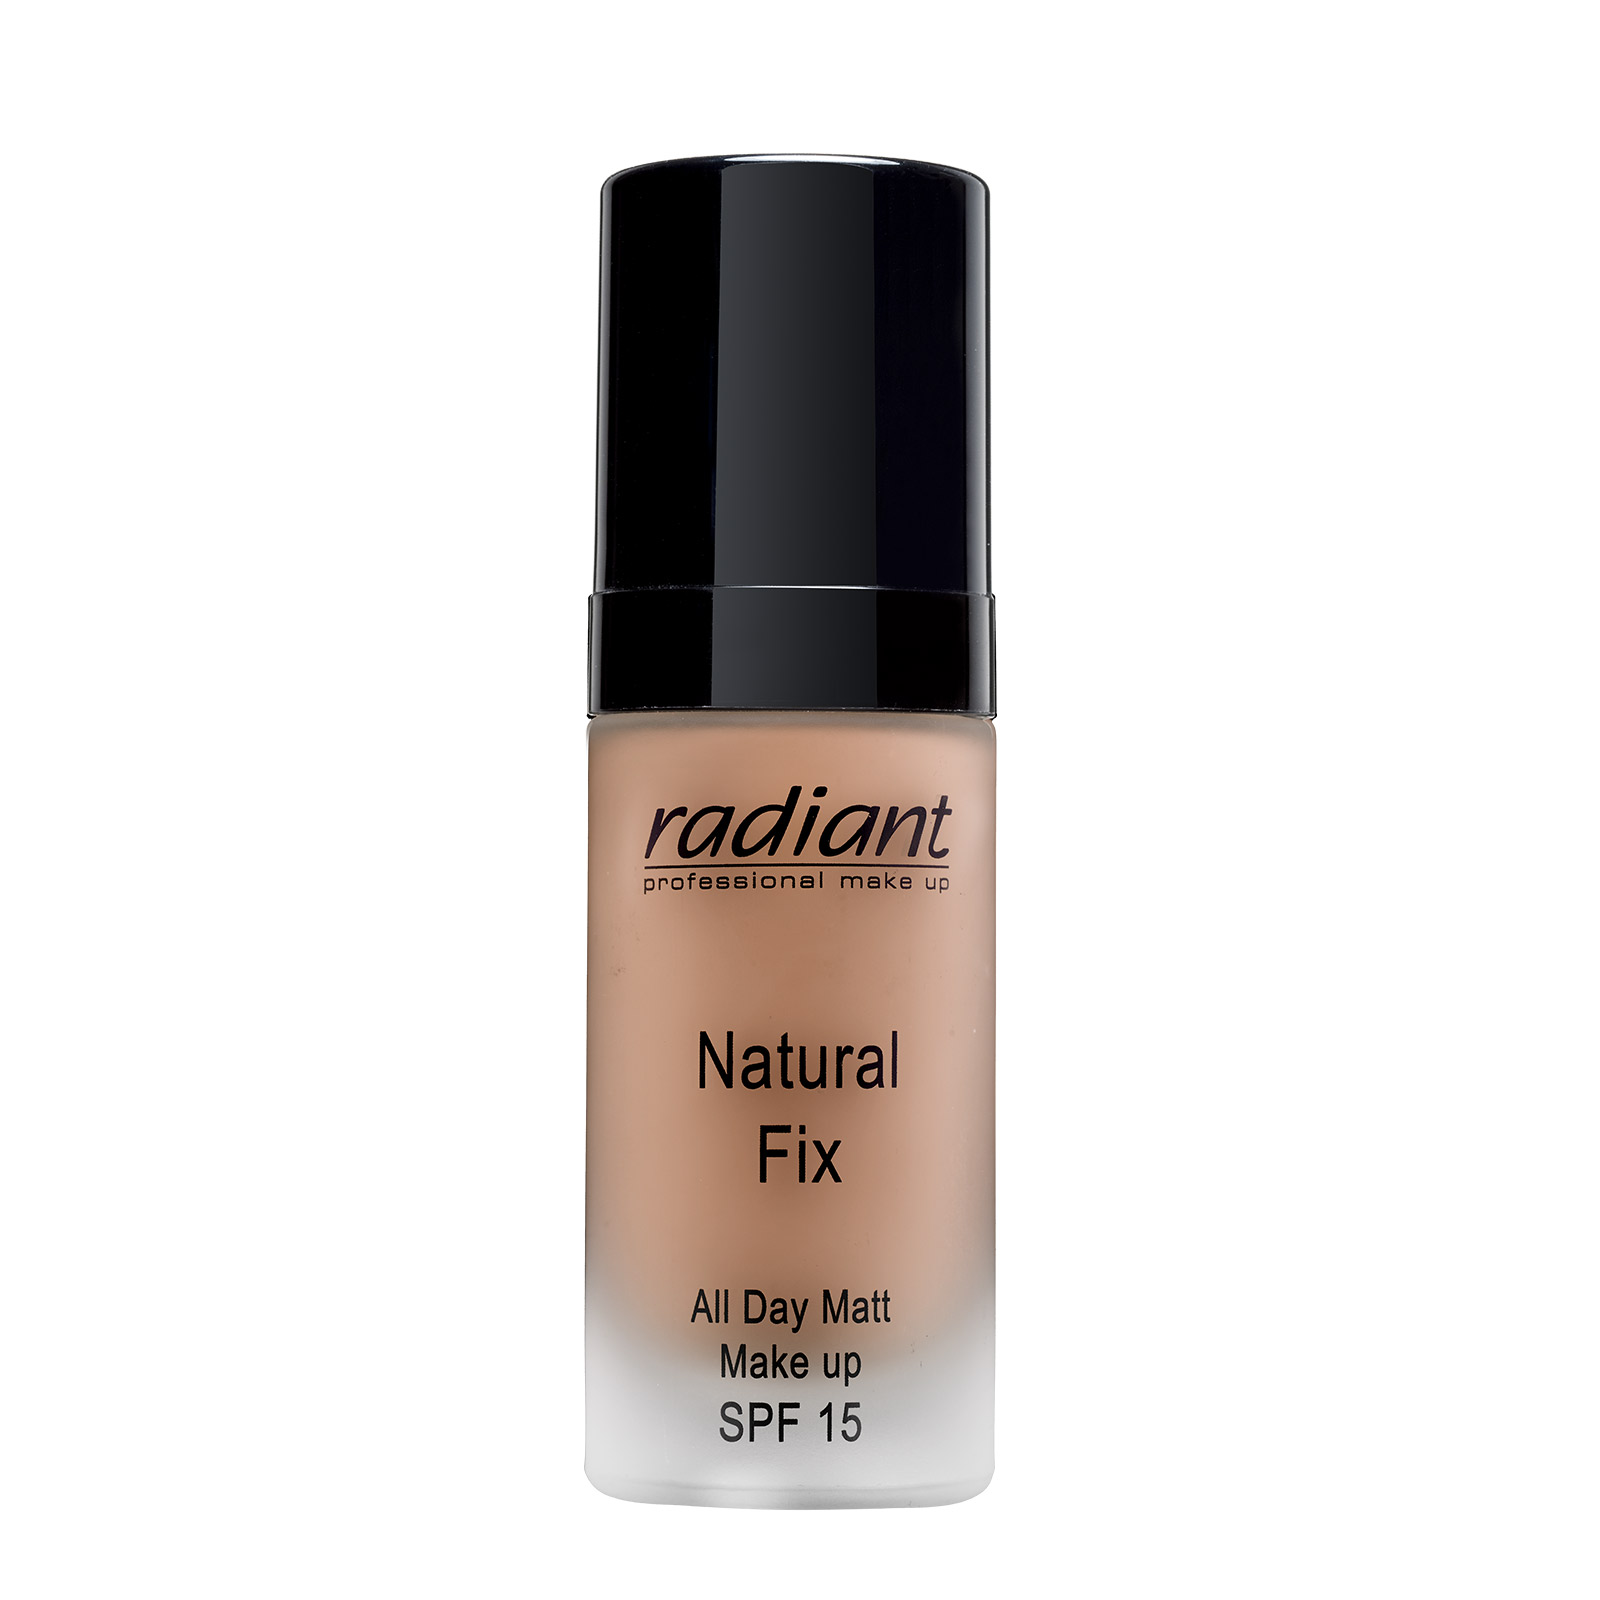 NATURAL FIX ALL DAY MATT MAKE UP SPF 15 (06b cinnamon)